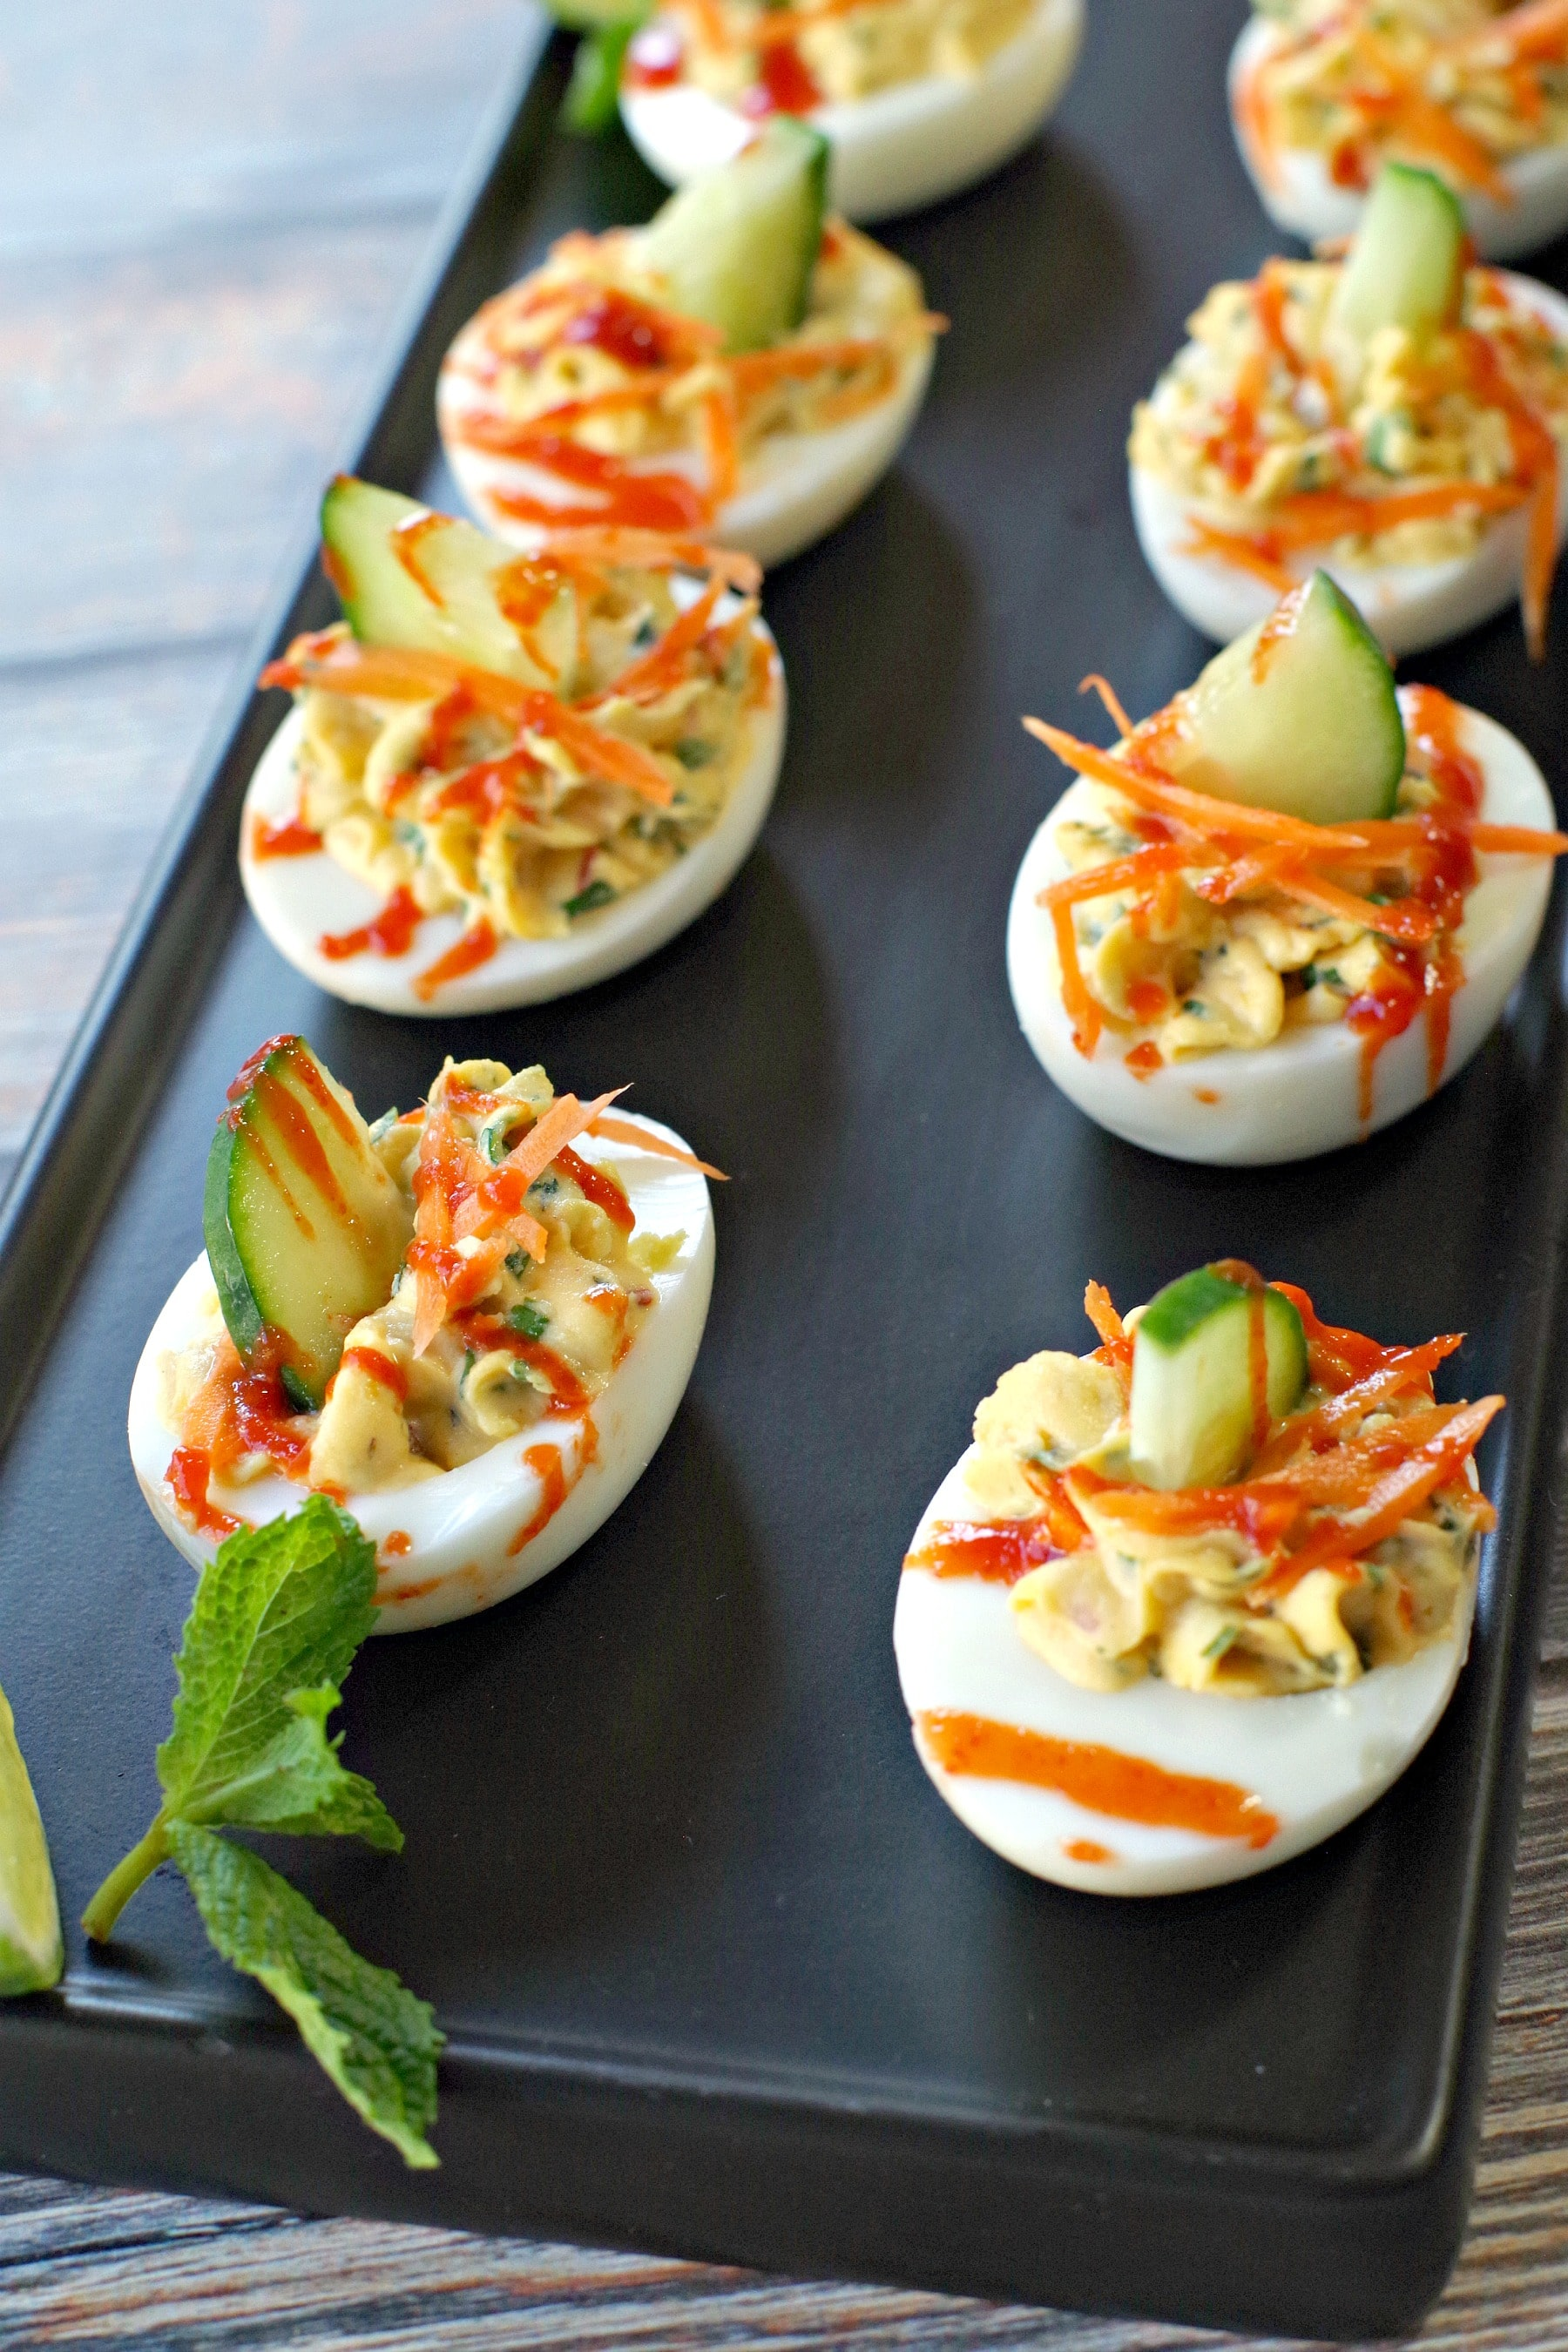 banh mi devilled eggs on a black tray with mint garnish